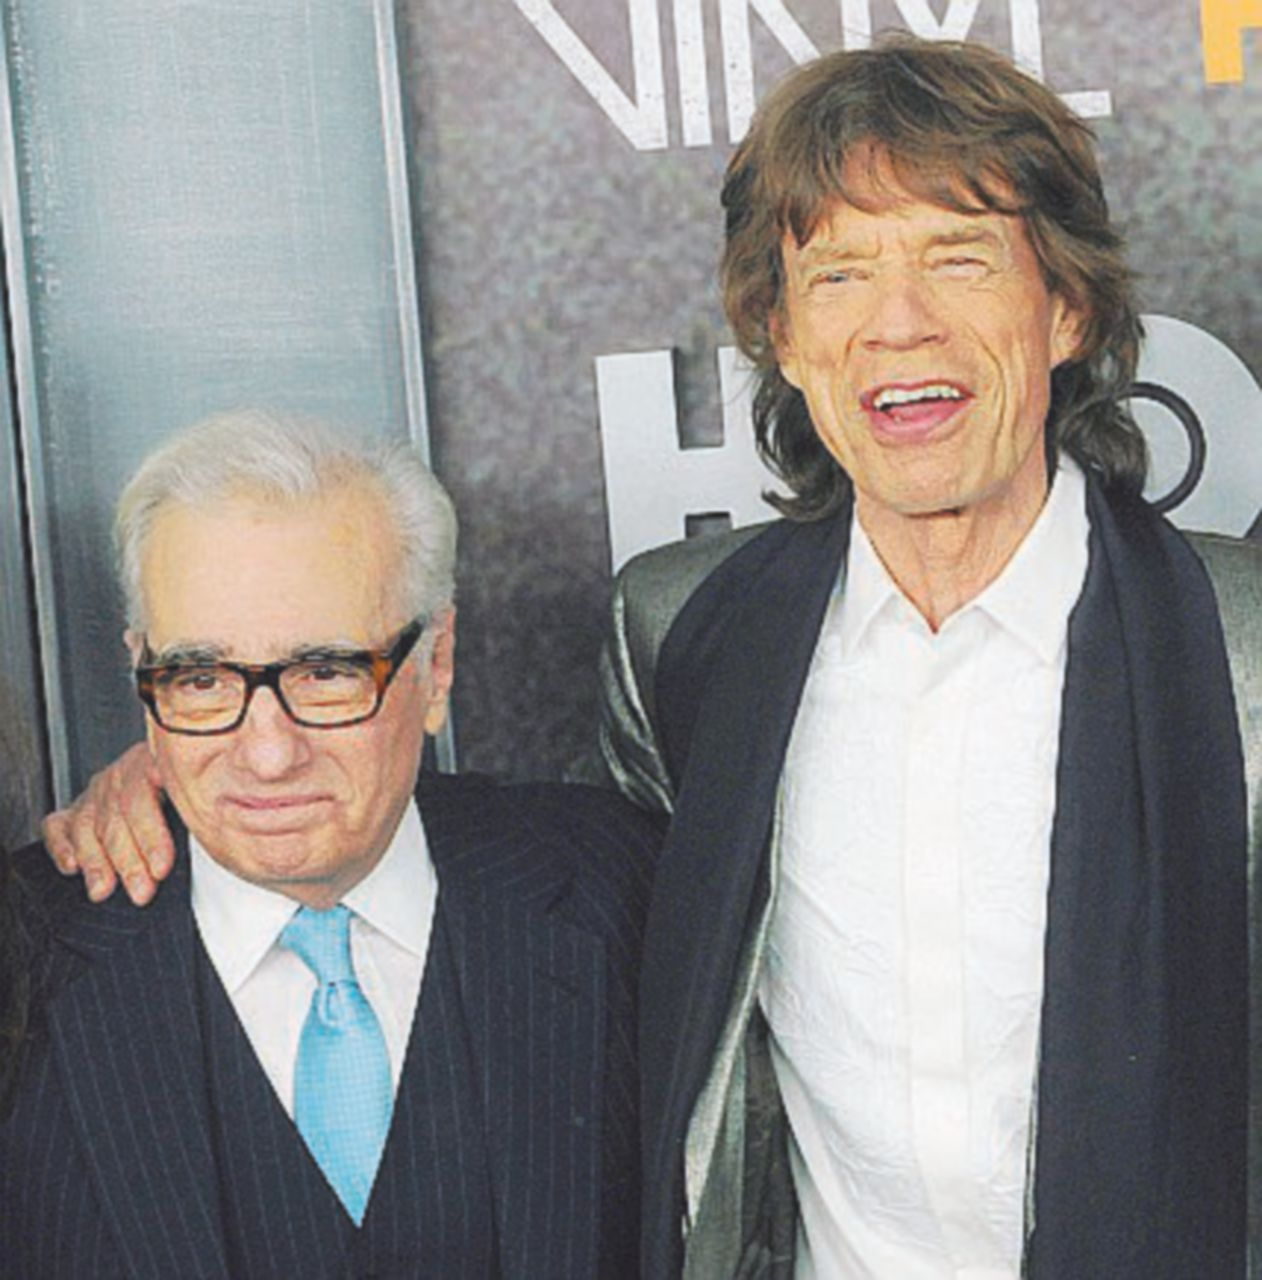 Rock & doc: Scorsese sui Rolling Stones